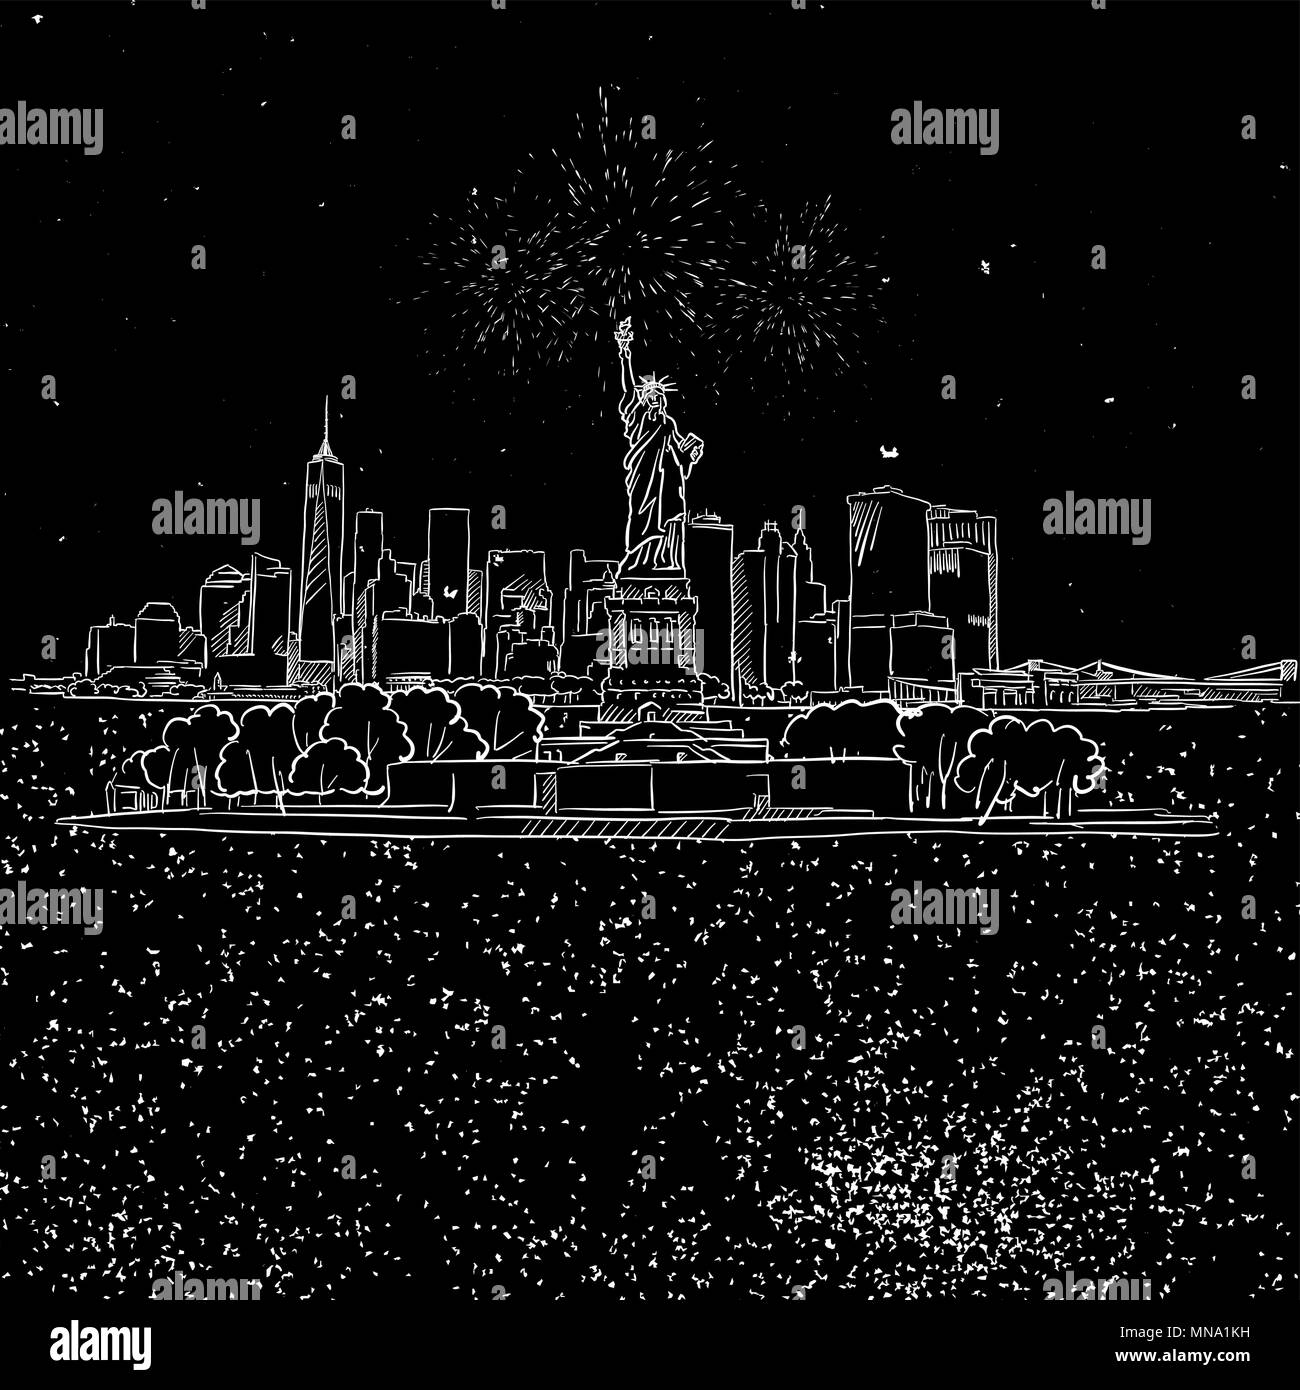 NYC and Liberty Stature on Island by Night Sketch, Hand-drawn Illustration Vector Outline Artwork Stock Vector